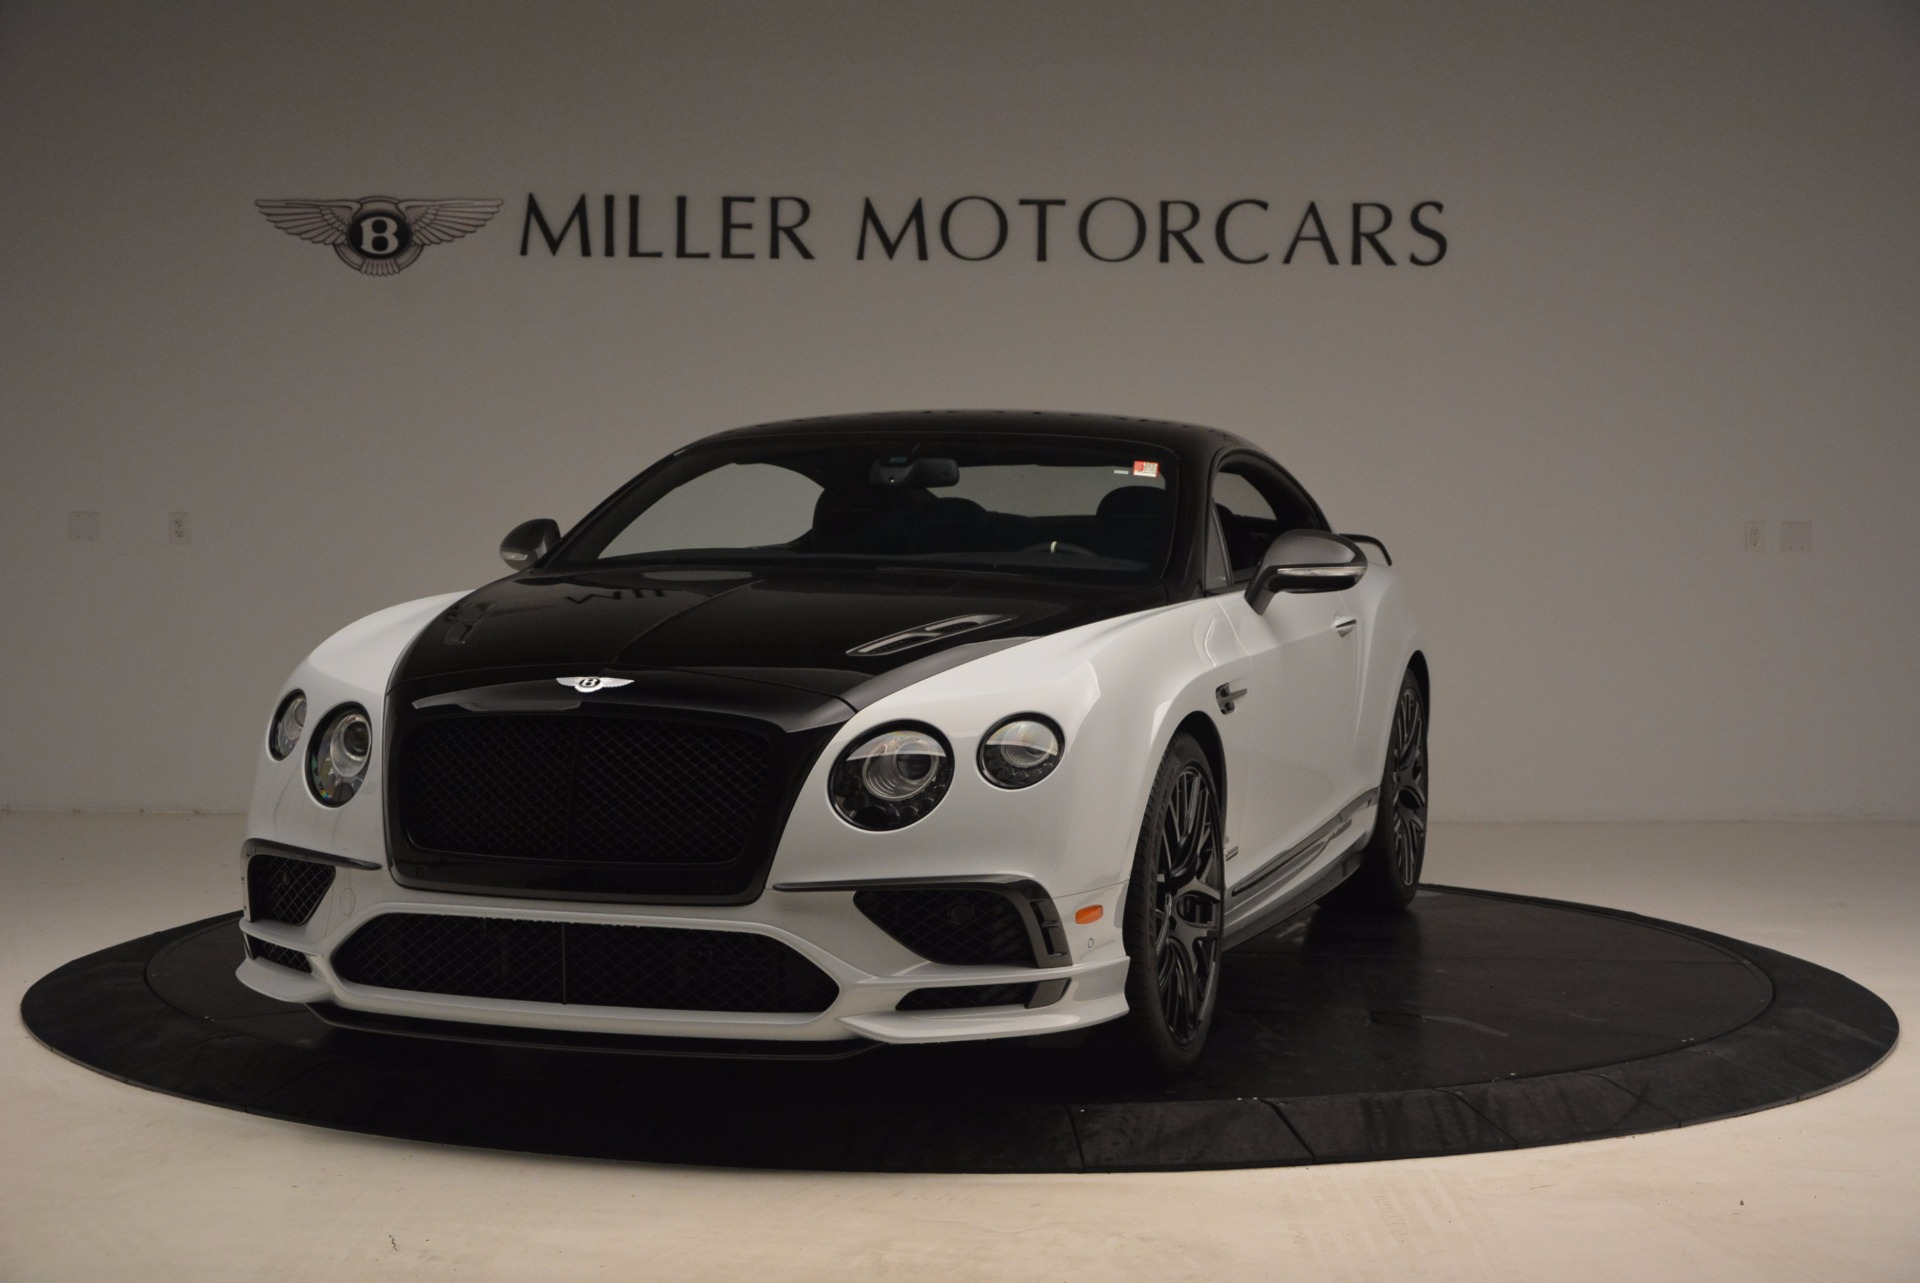 Used 2017 Bentley Continental GT Supersports for sale $199,900 at Bentley Greenwich in Greenwich CT 06830 1